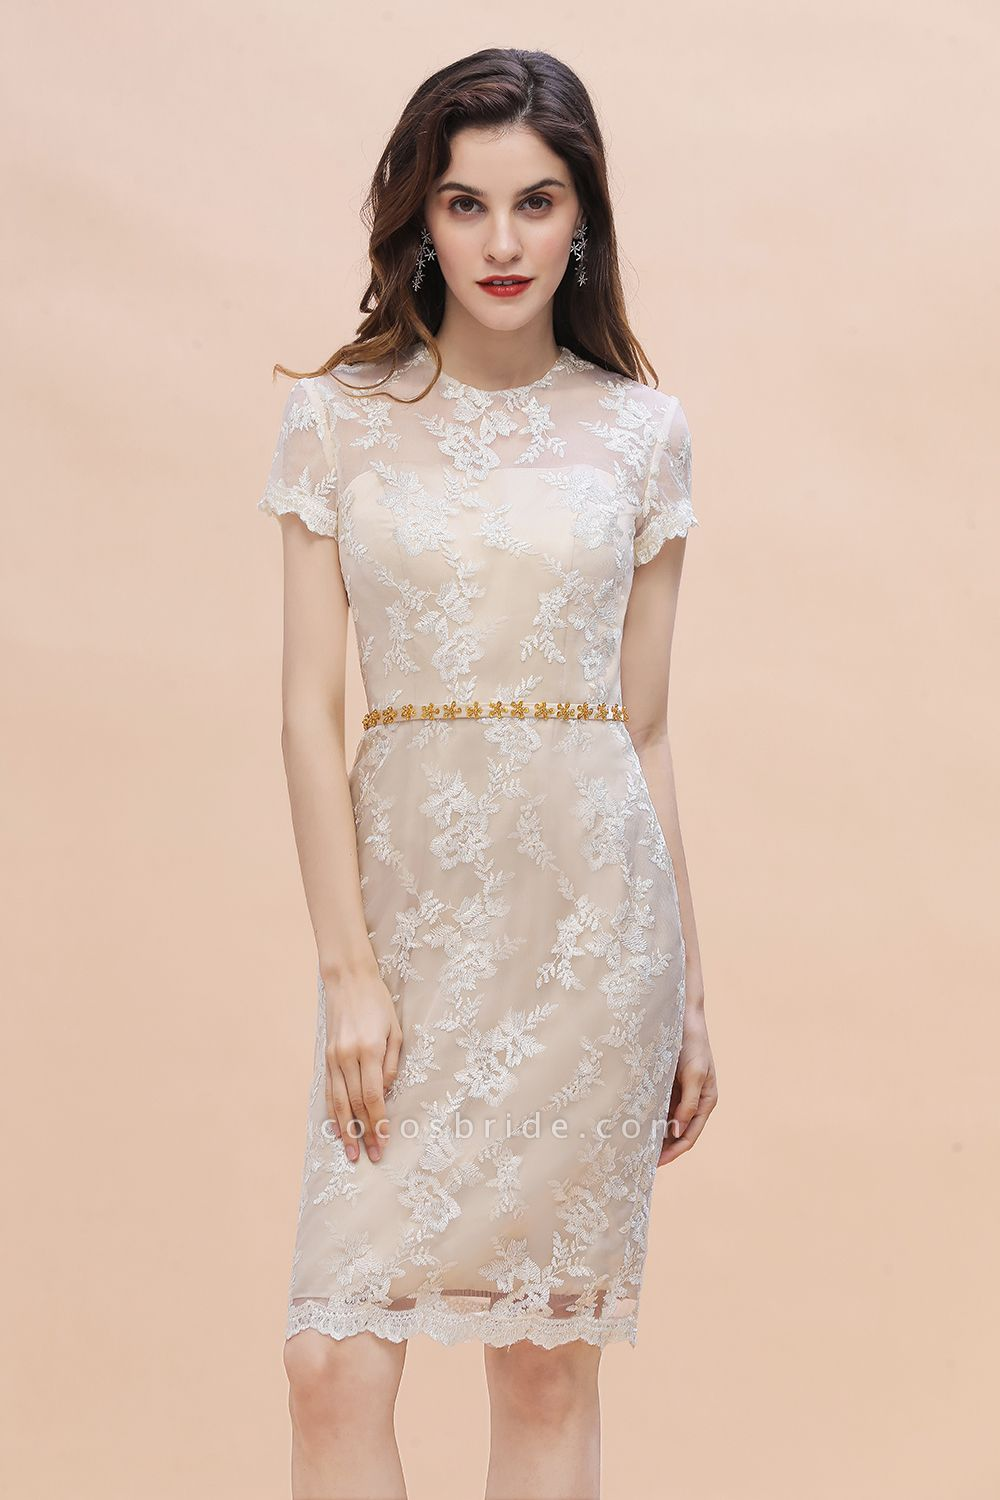 Tulle Lace Beads Belt Short Sleeves Mother of Bride Dress